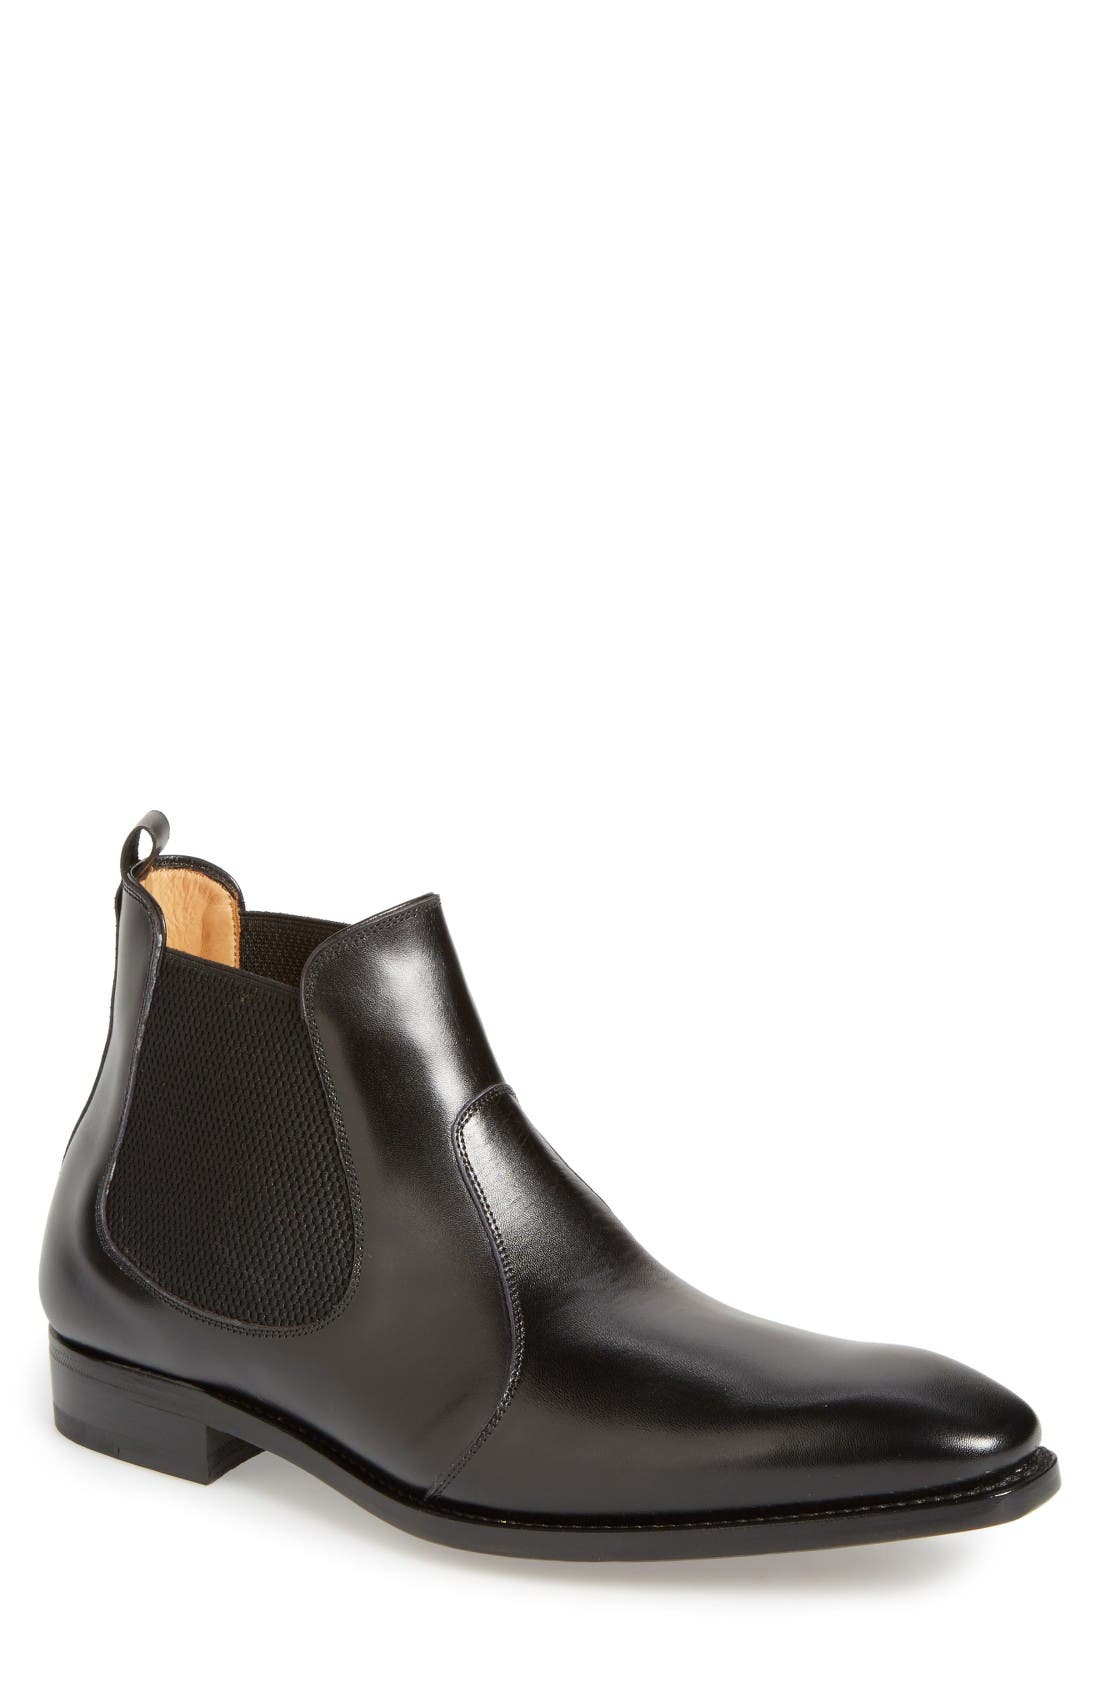 Alternate Image 1 Selected - Impronta by Mezlan G112 Chelsea Boot (Men)